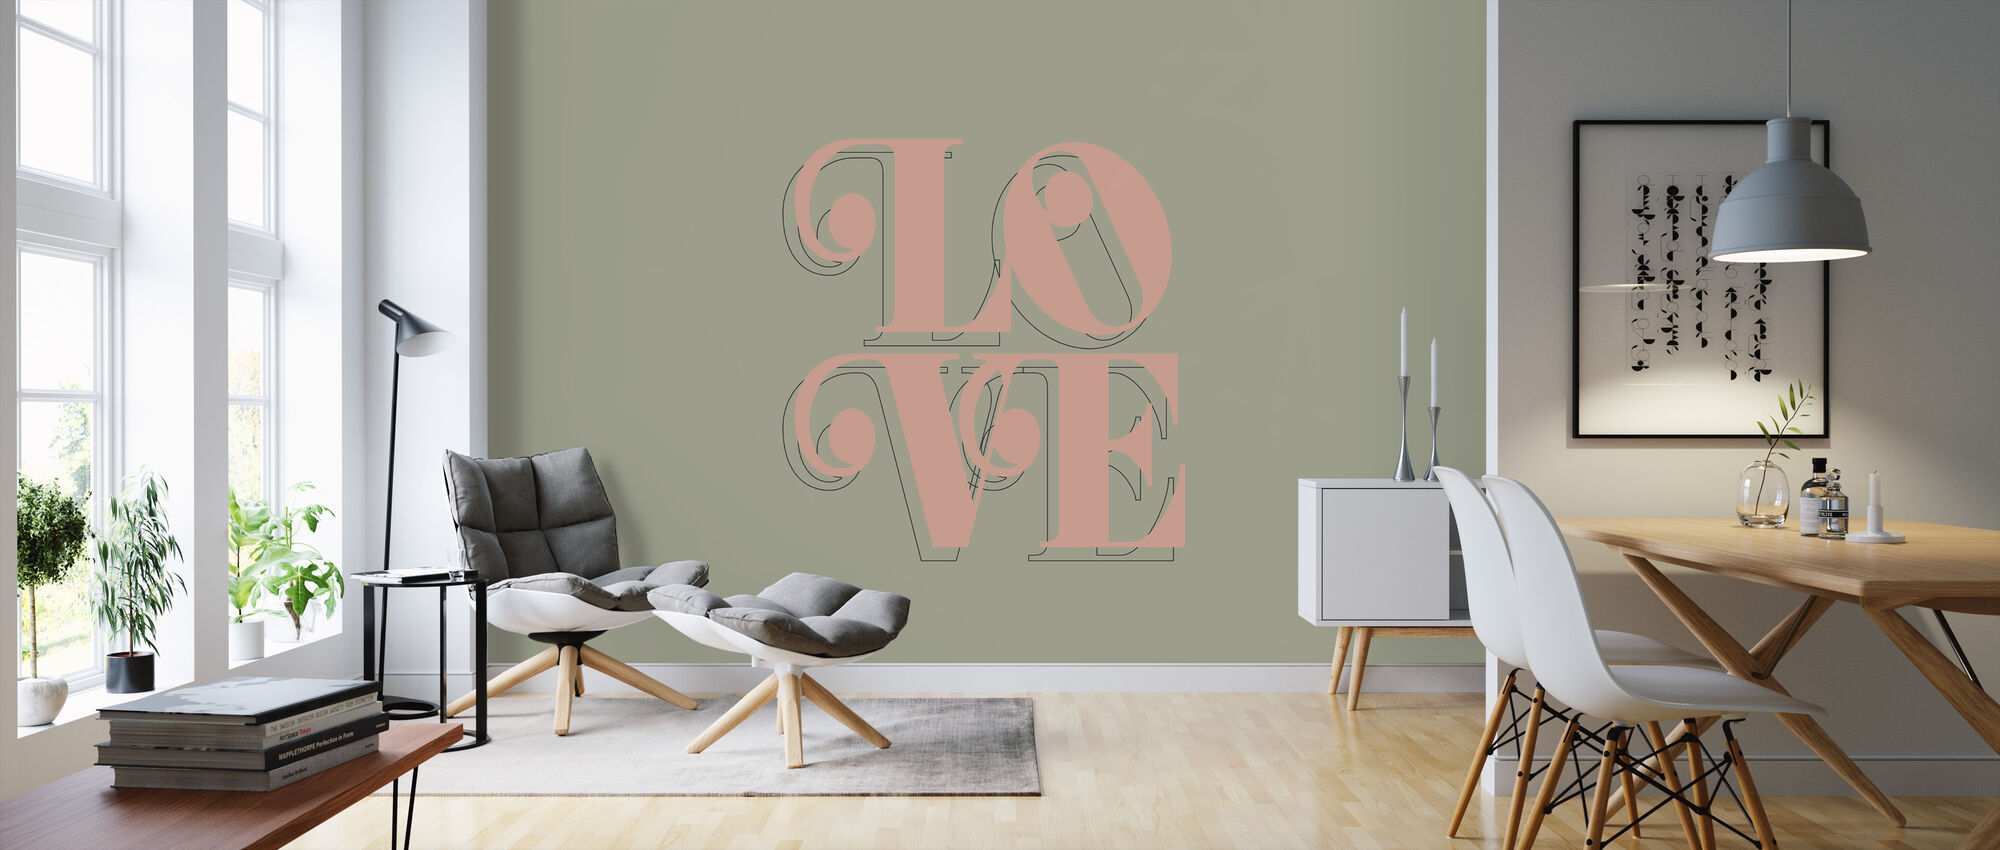 Love Kale - Wallpaper - Living Room